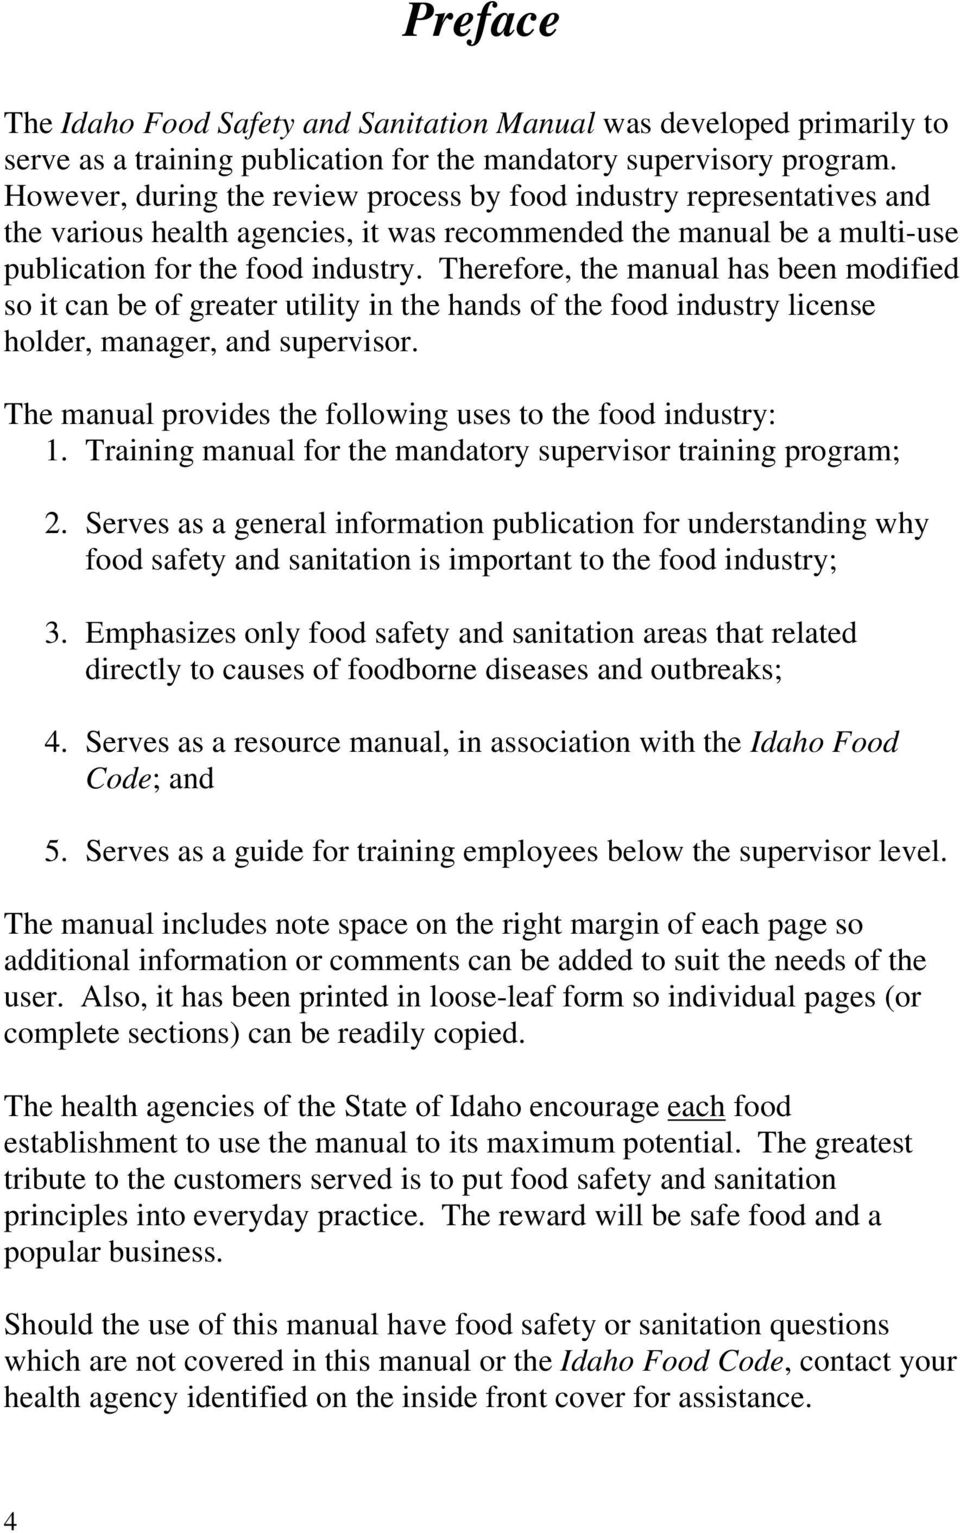 Therefore, the manual has been modified so it can be of greater utility in the hands of the food industry license holder, manager, and supervisor.